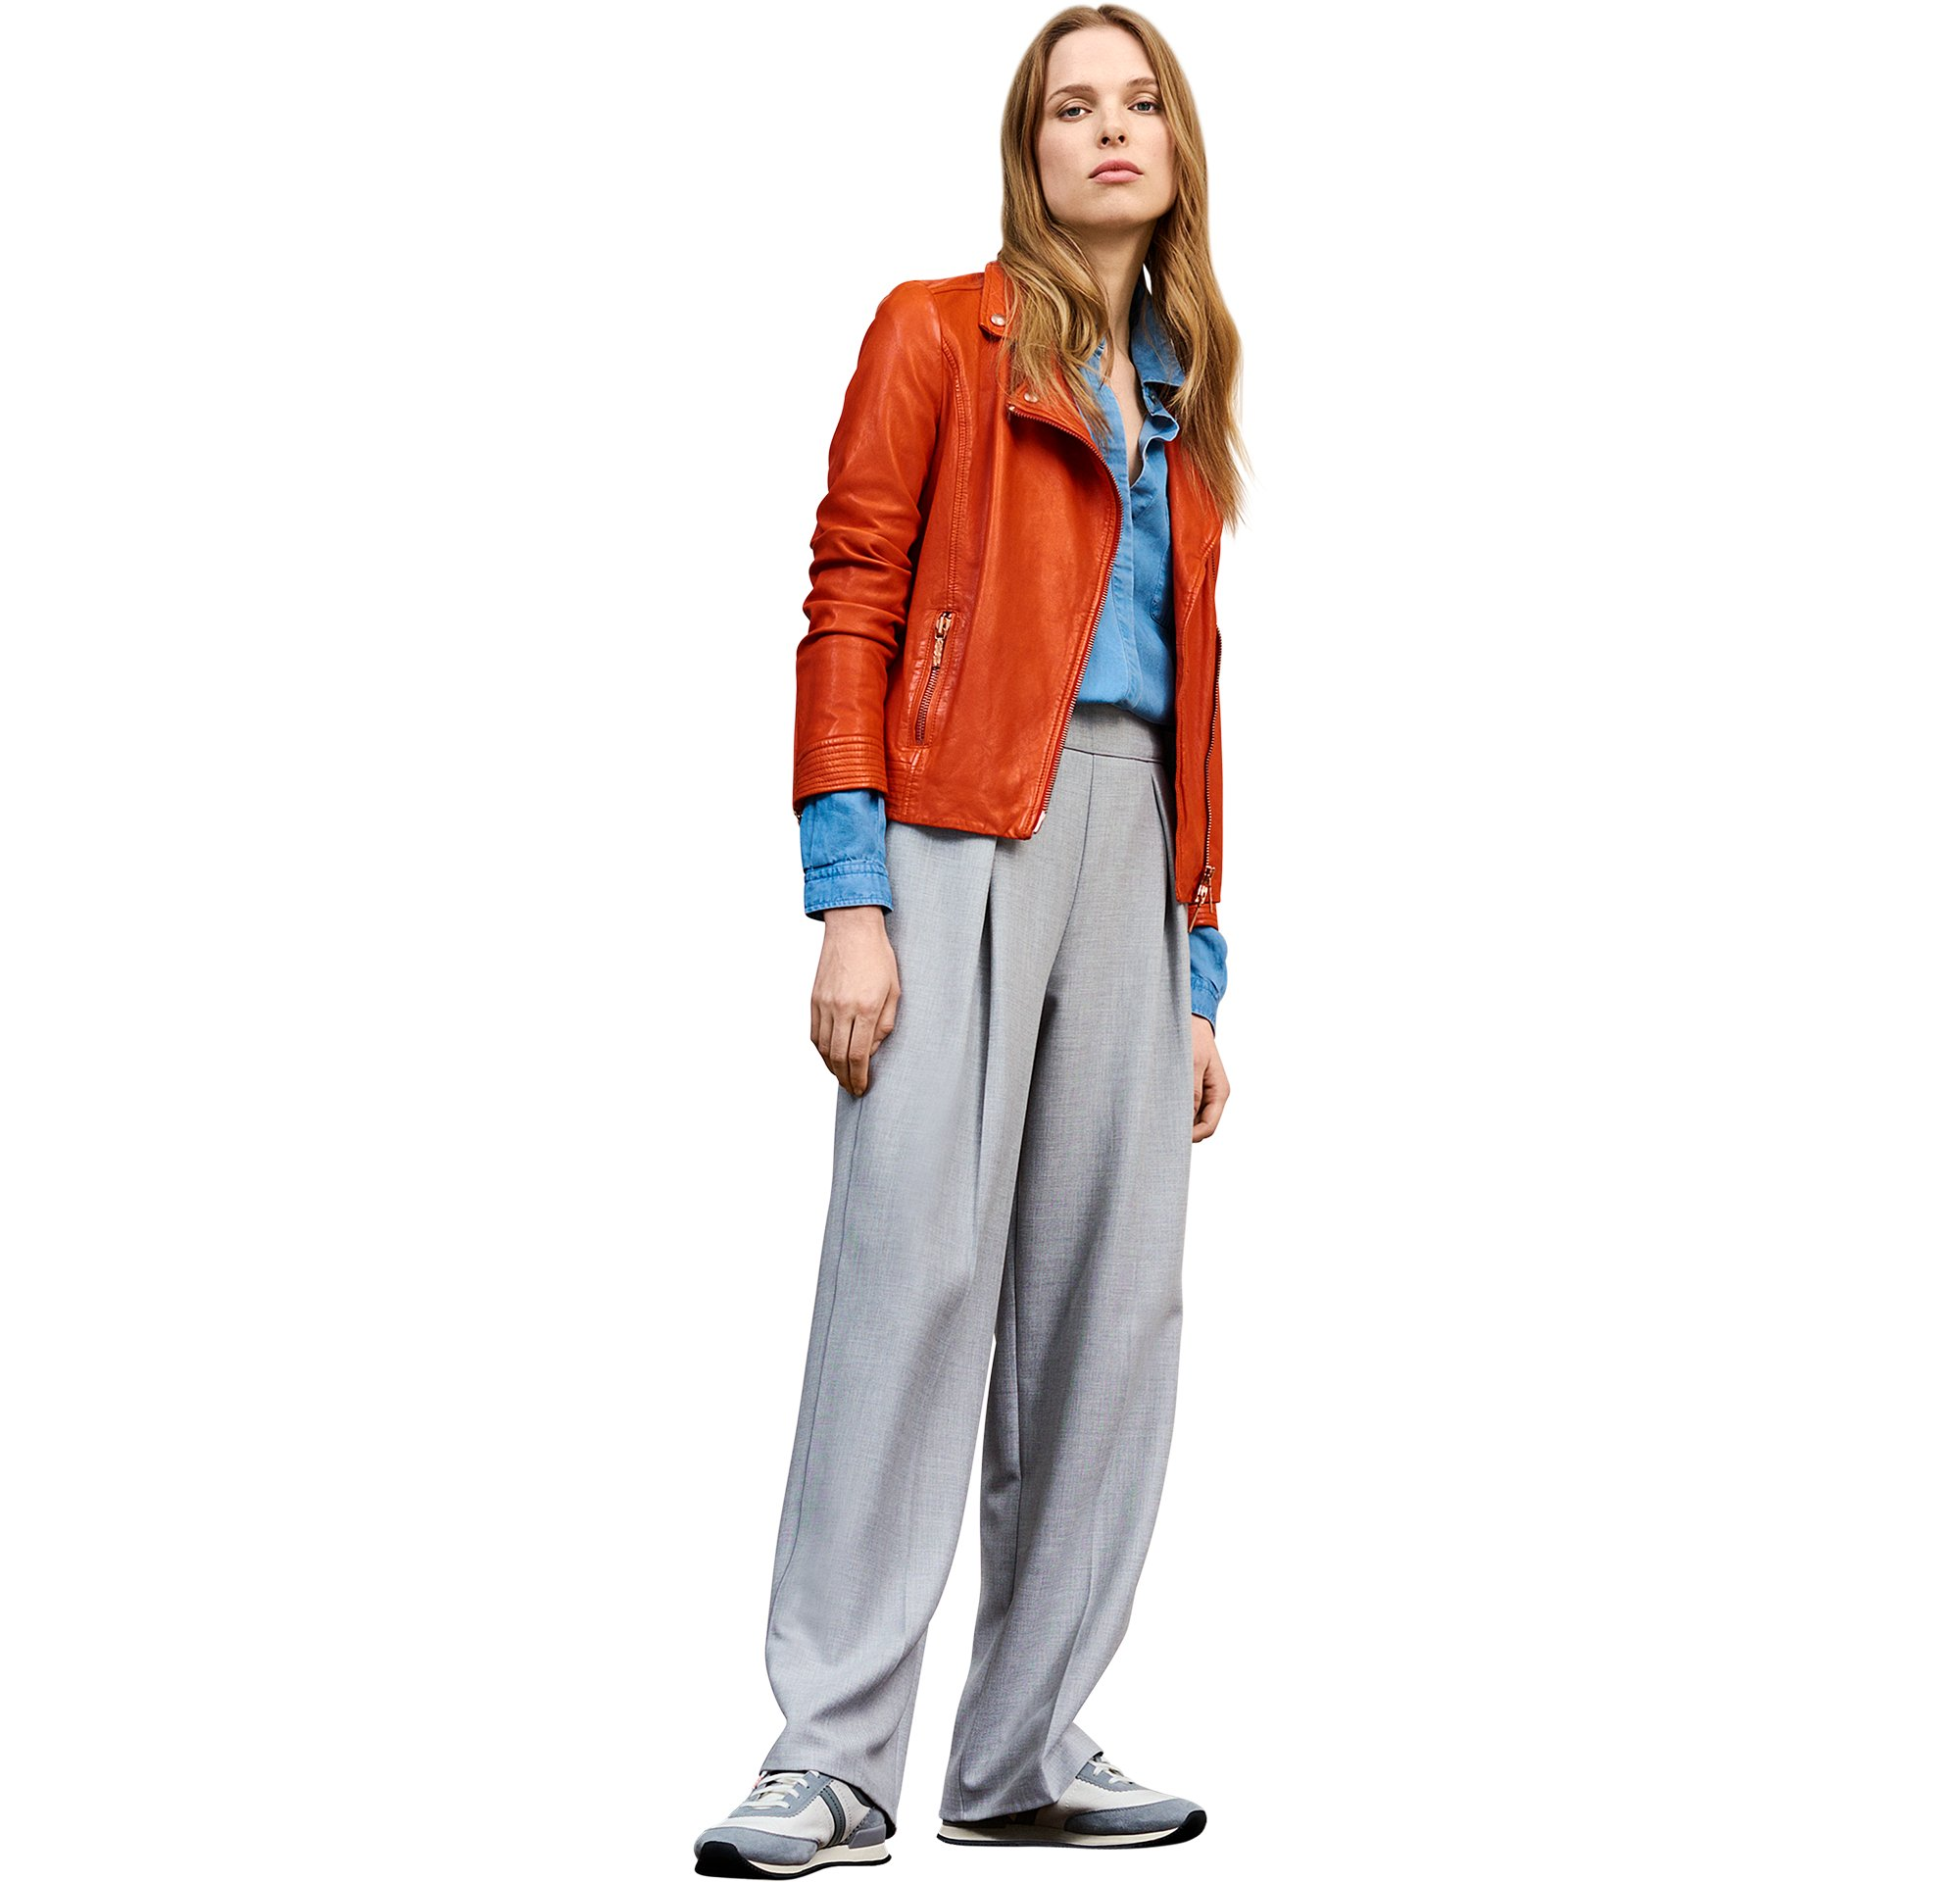 Manteau, chemise, pantalon BOSS Orange Femme